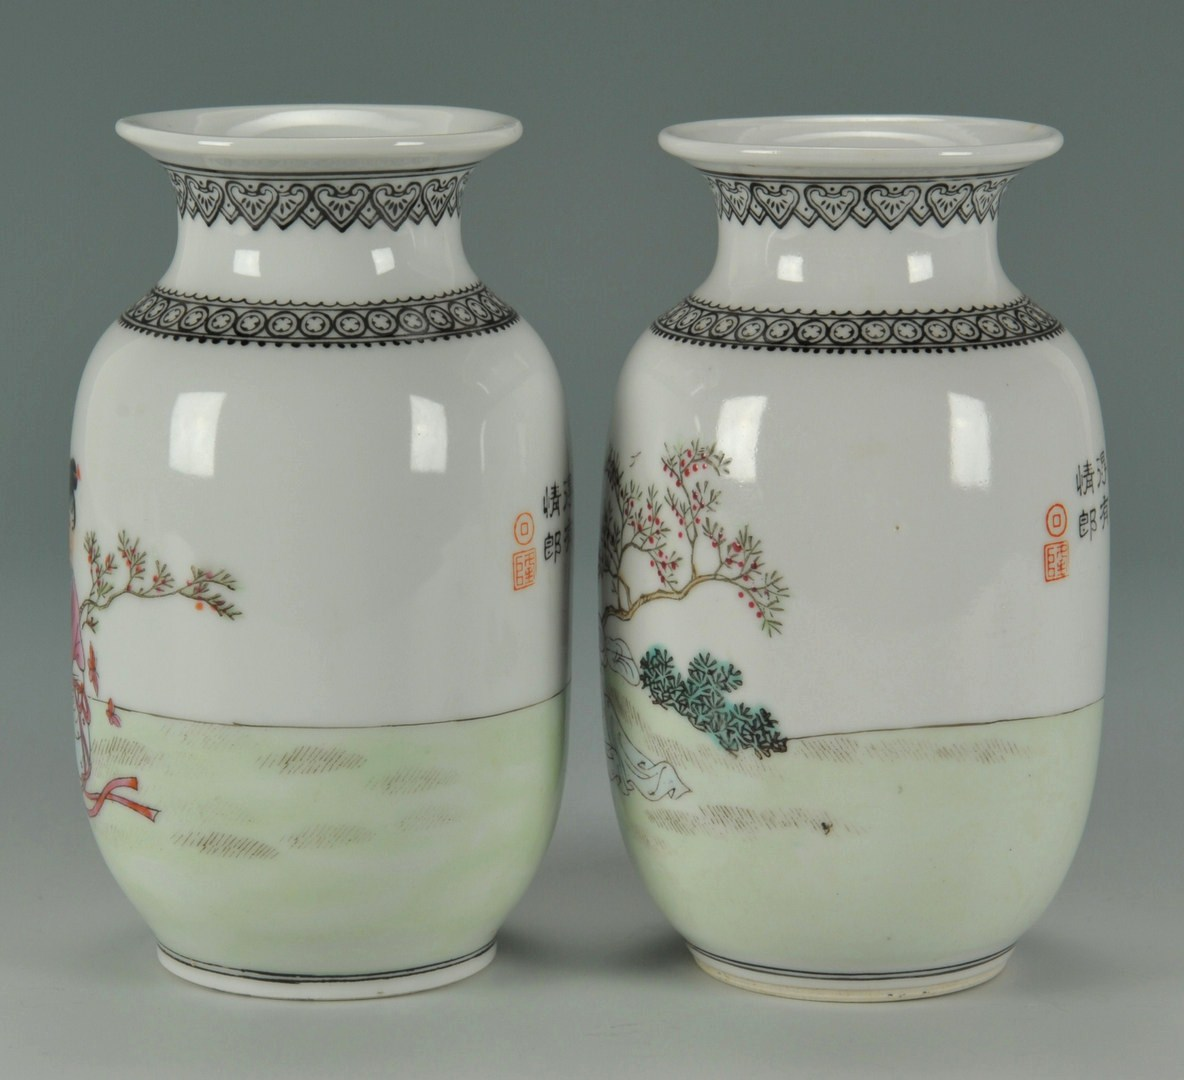 Lot 478: Pr. Famille Rose Republic Vases w/inscription